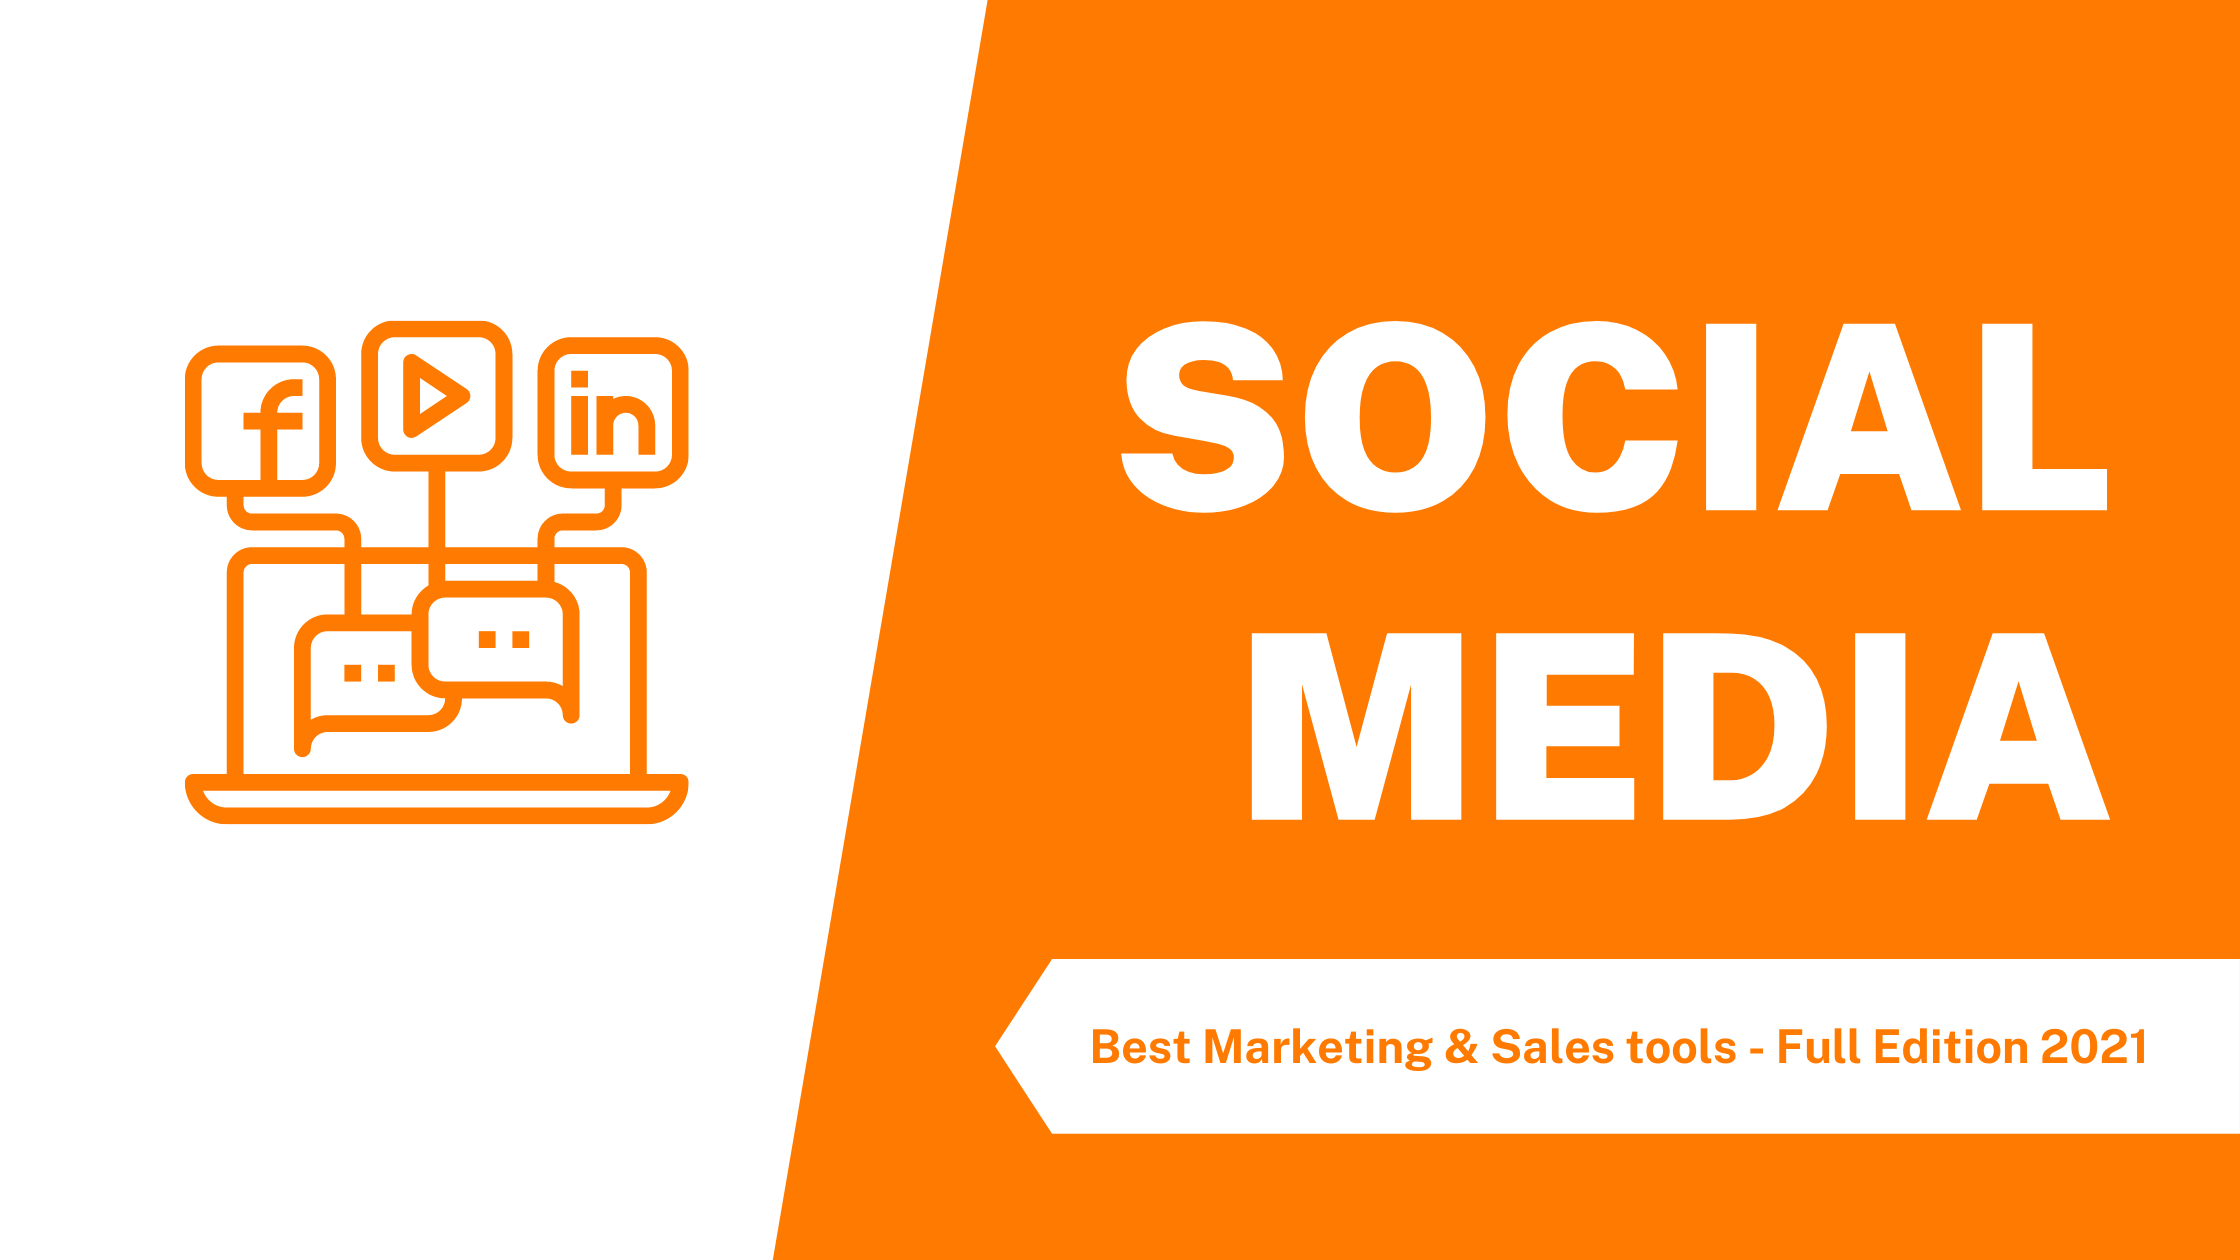 The best social media tools for your business